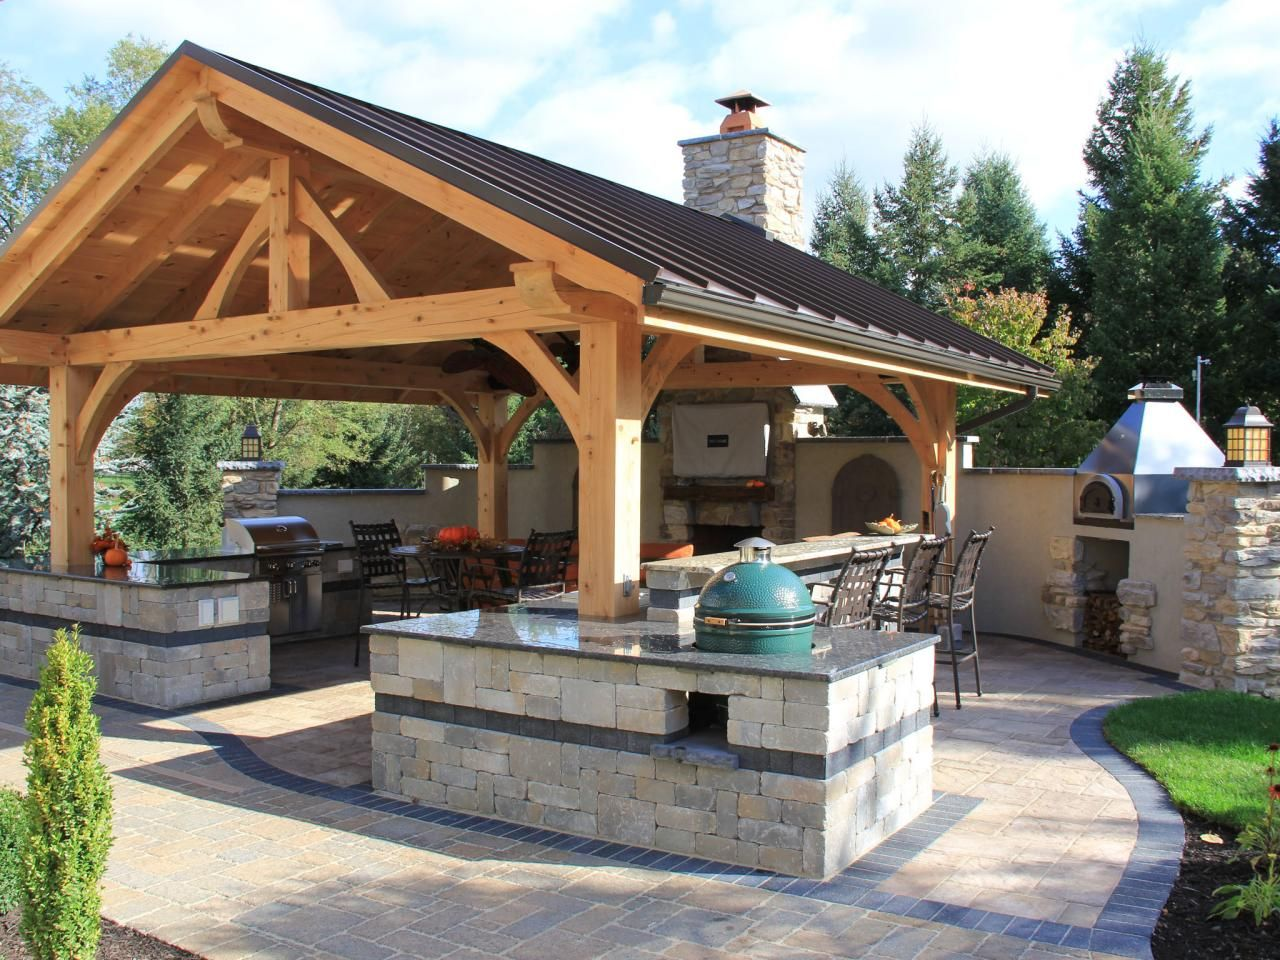 covered outdoor kitchen structures poolside pinterest 29 amazing outdoor kitchen cabinets ideas your guests will certainly go crazy houseideas farmhousetable bathroomideas kitchendesign 27 make